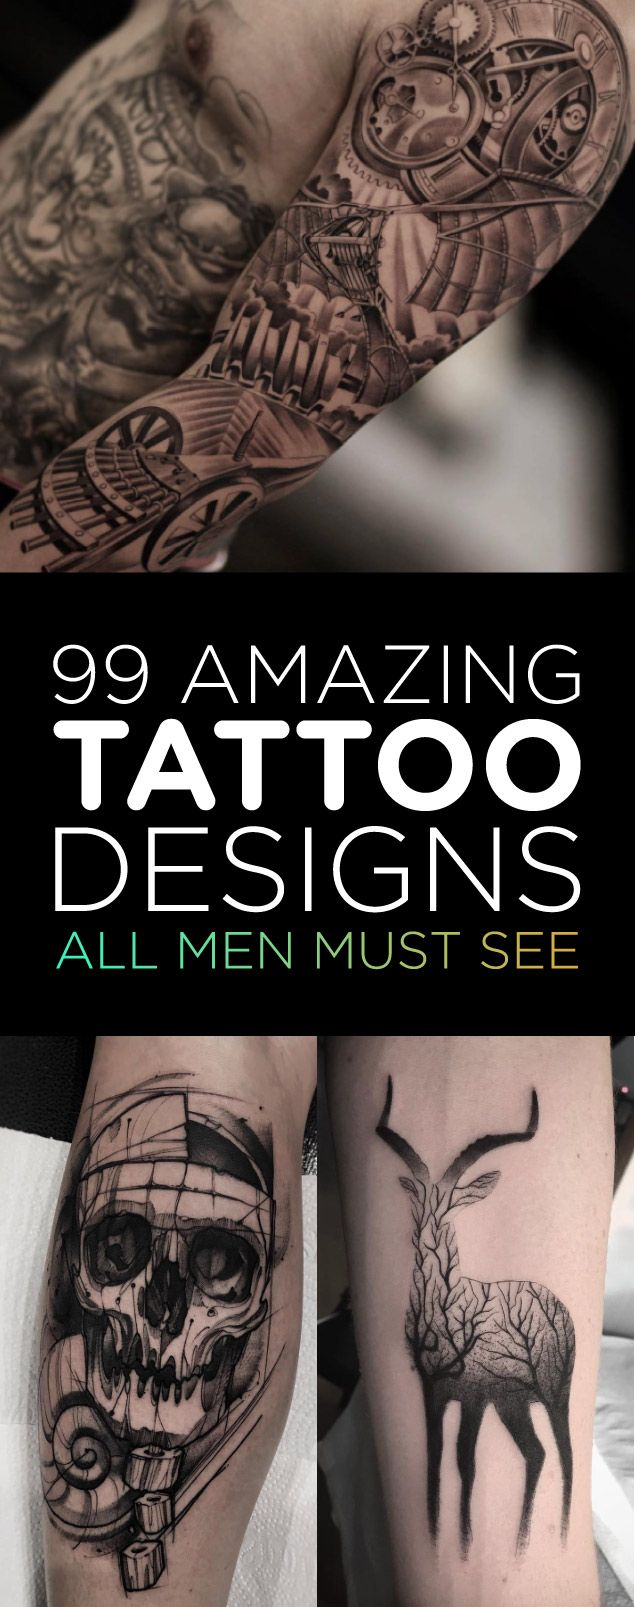 45 amazing japanese tattoo designs tattoo easily - 99 Amazing Tattoo Designs All Men Must See